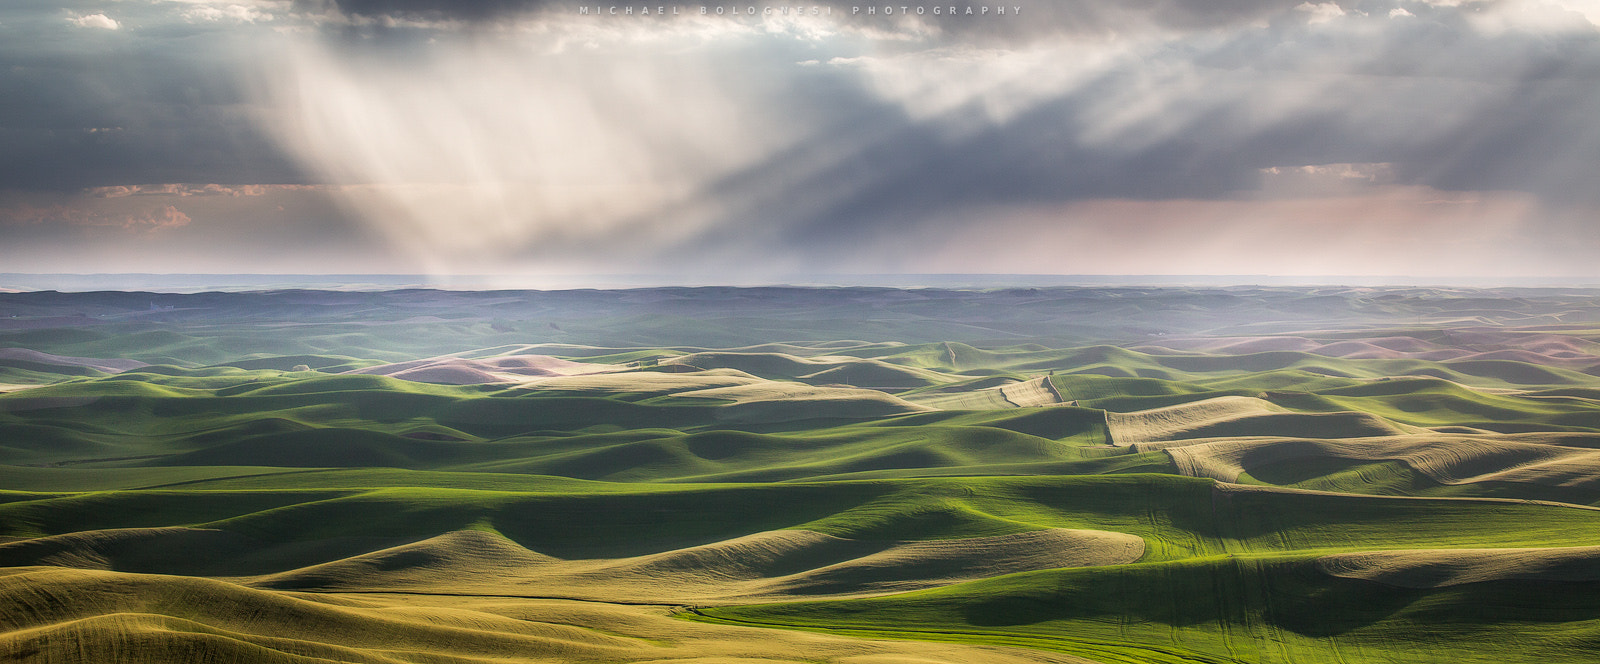 Photograph Dramatic Light on Steptoe by Michael Bolognesi on 500px